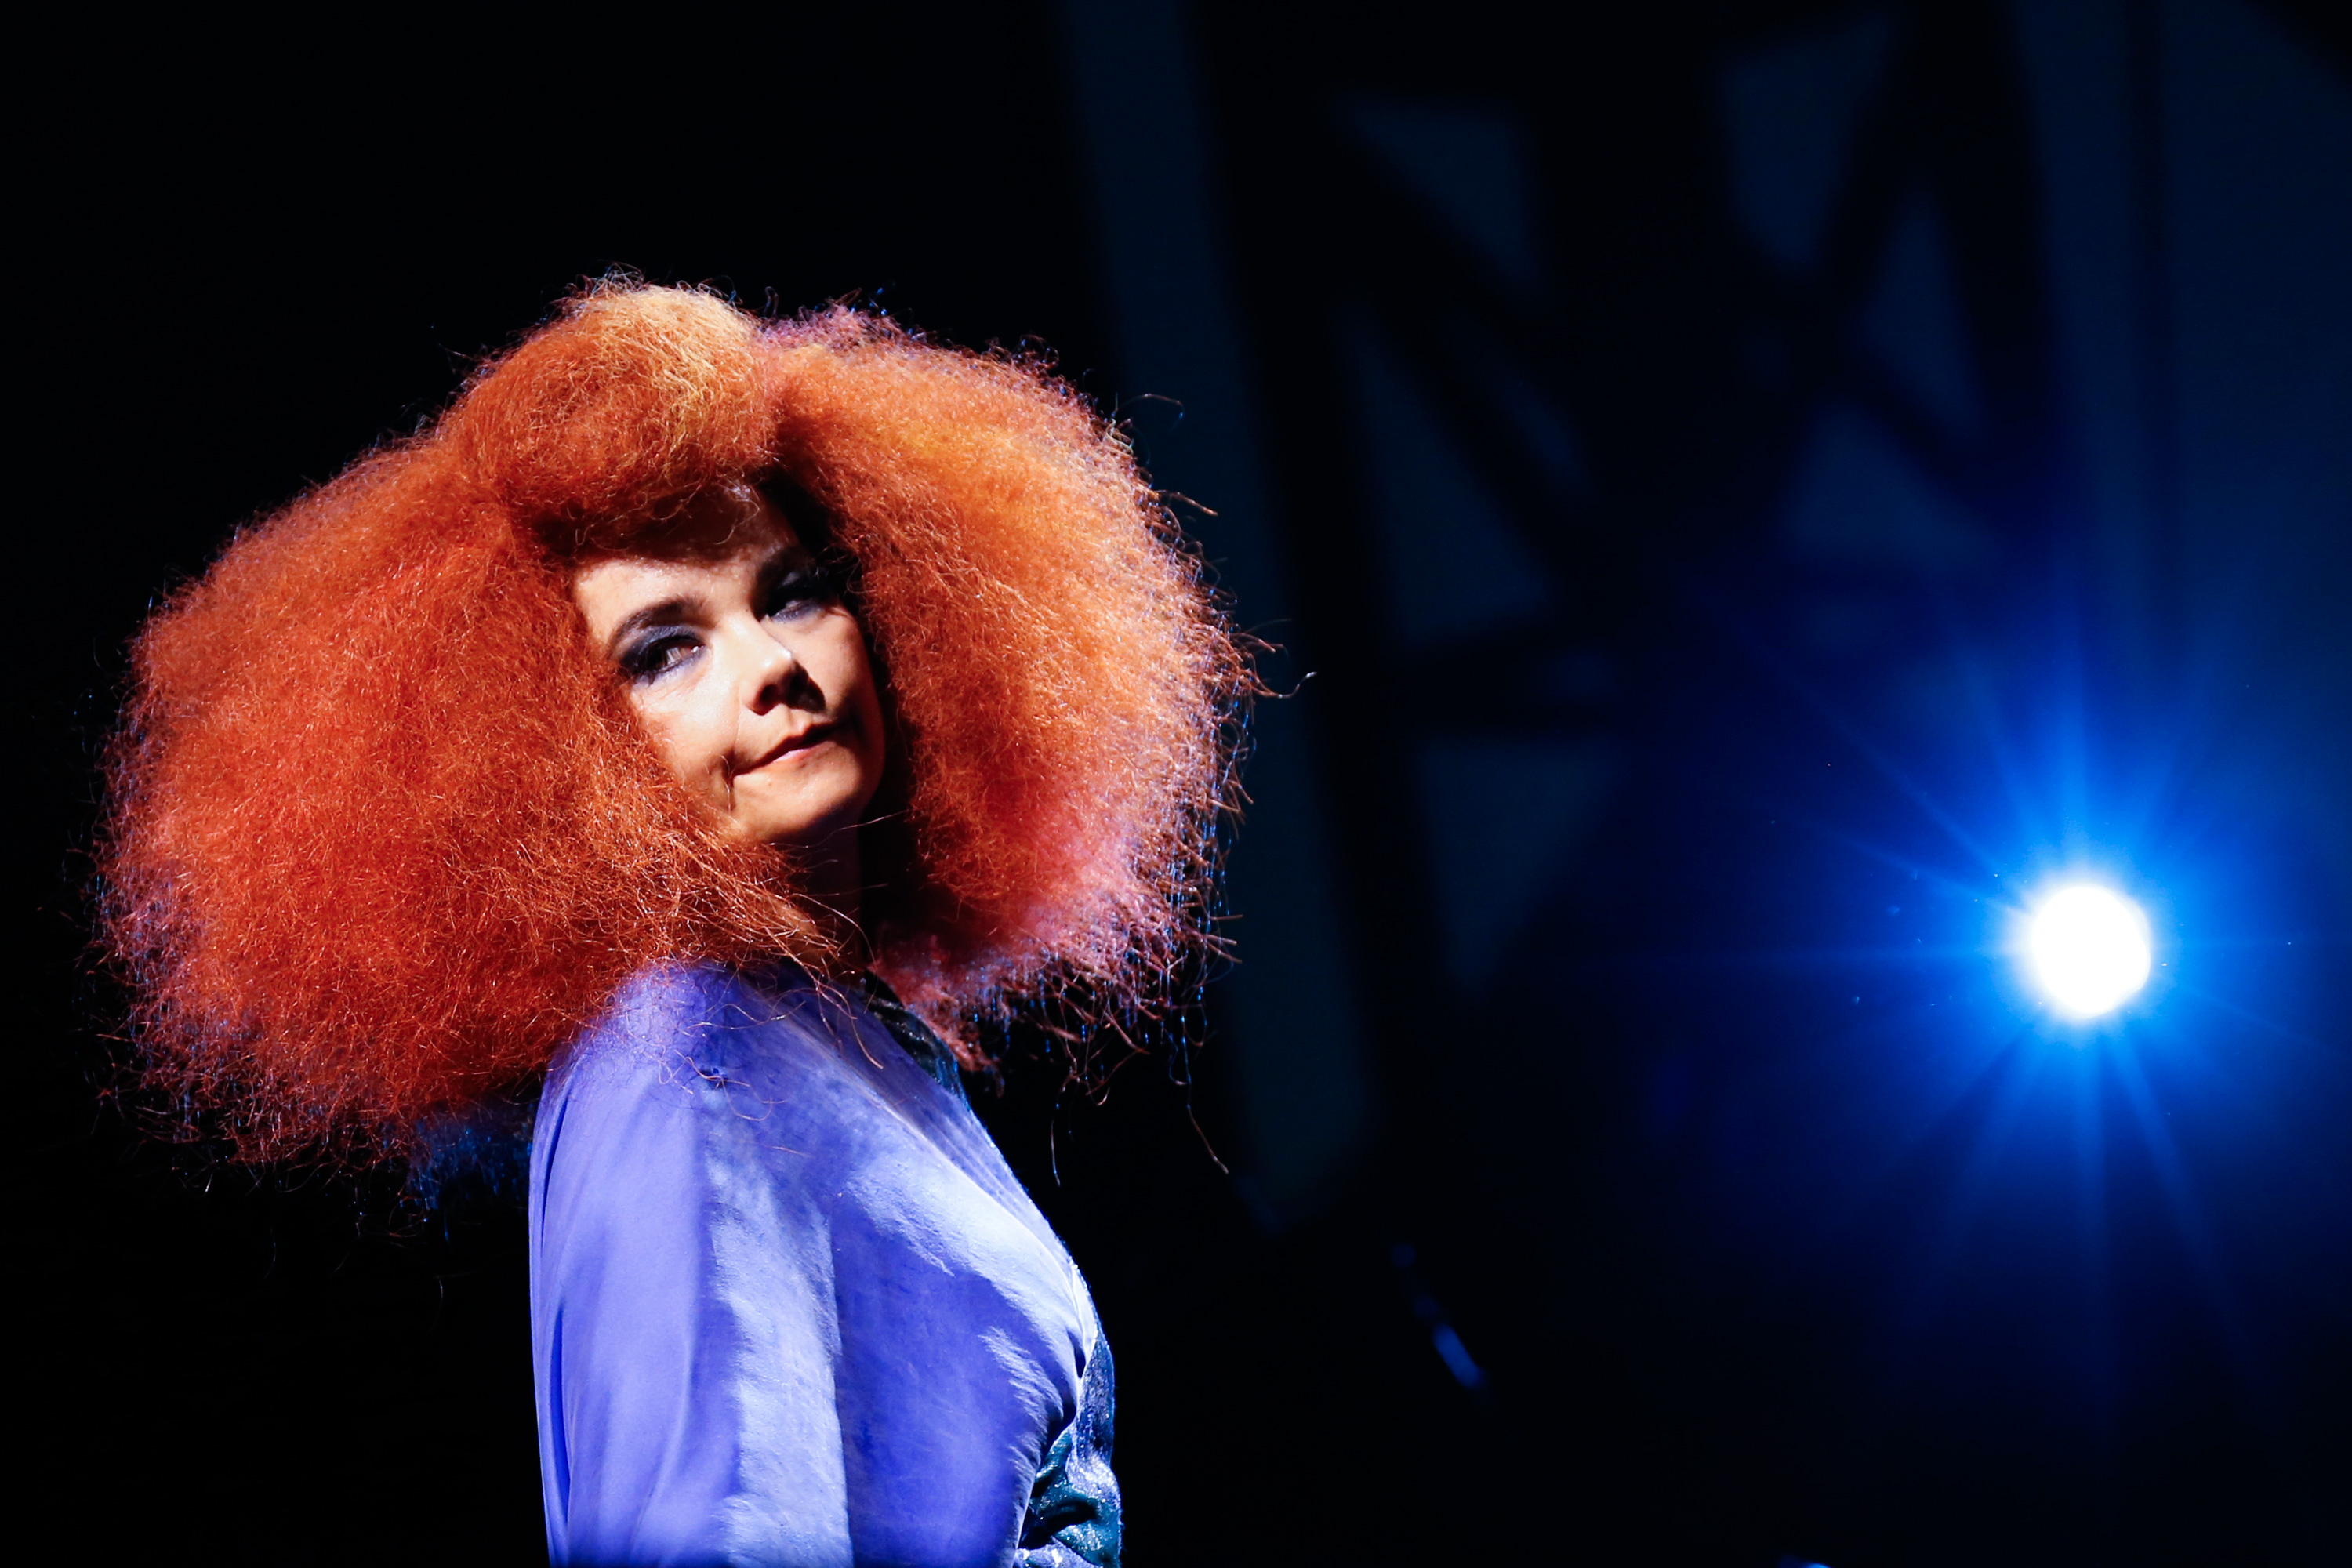 Björk performs in Ottawa, Canada on July 13, 2013.